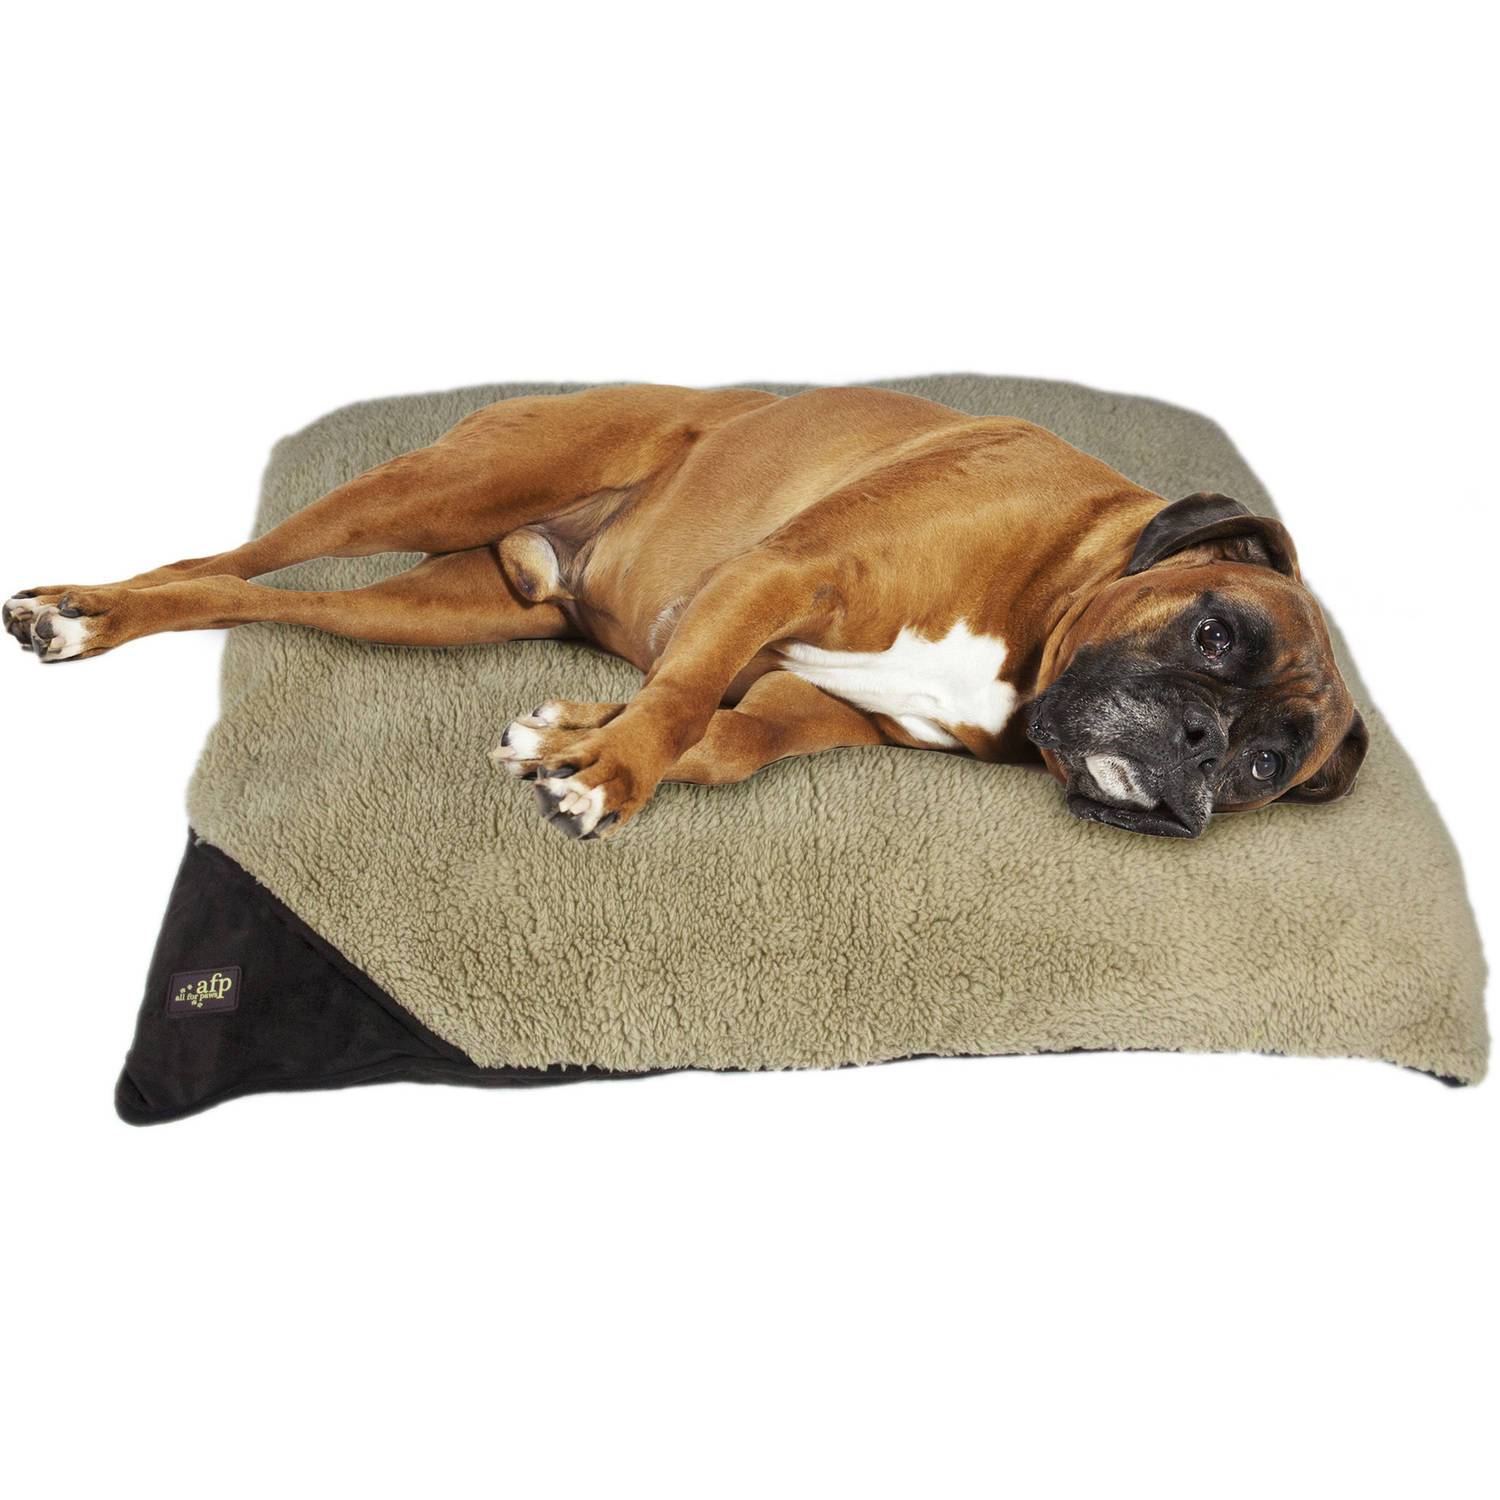 AFP Lambswool Pillow Bed, Brown, Lg